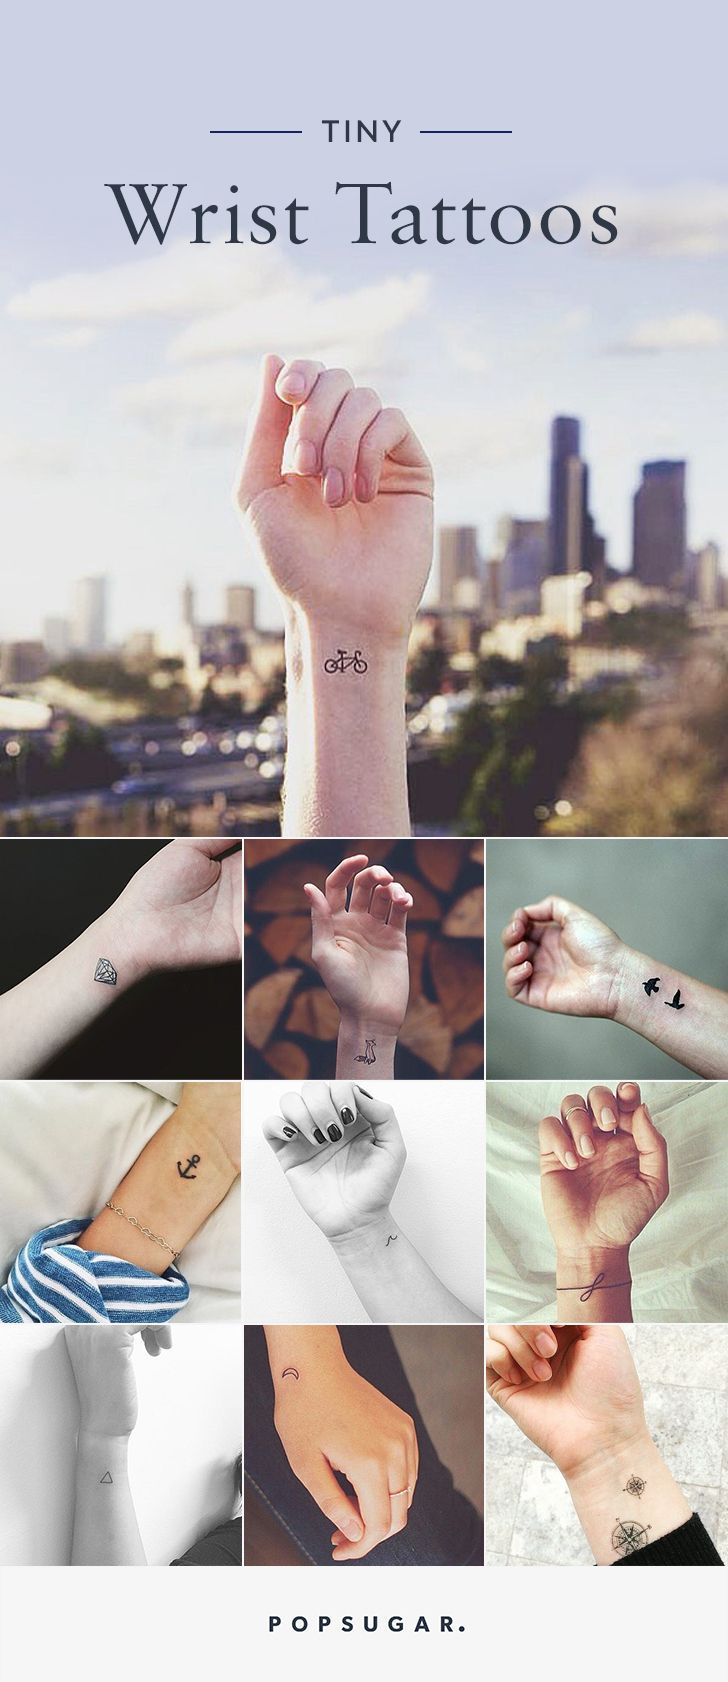 Wrist tattoos are the ultimate accessory.